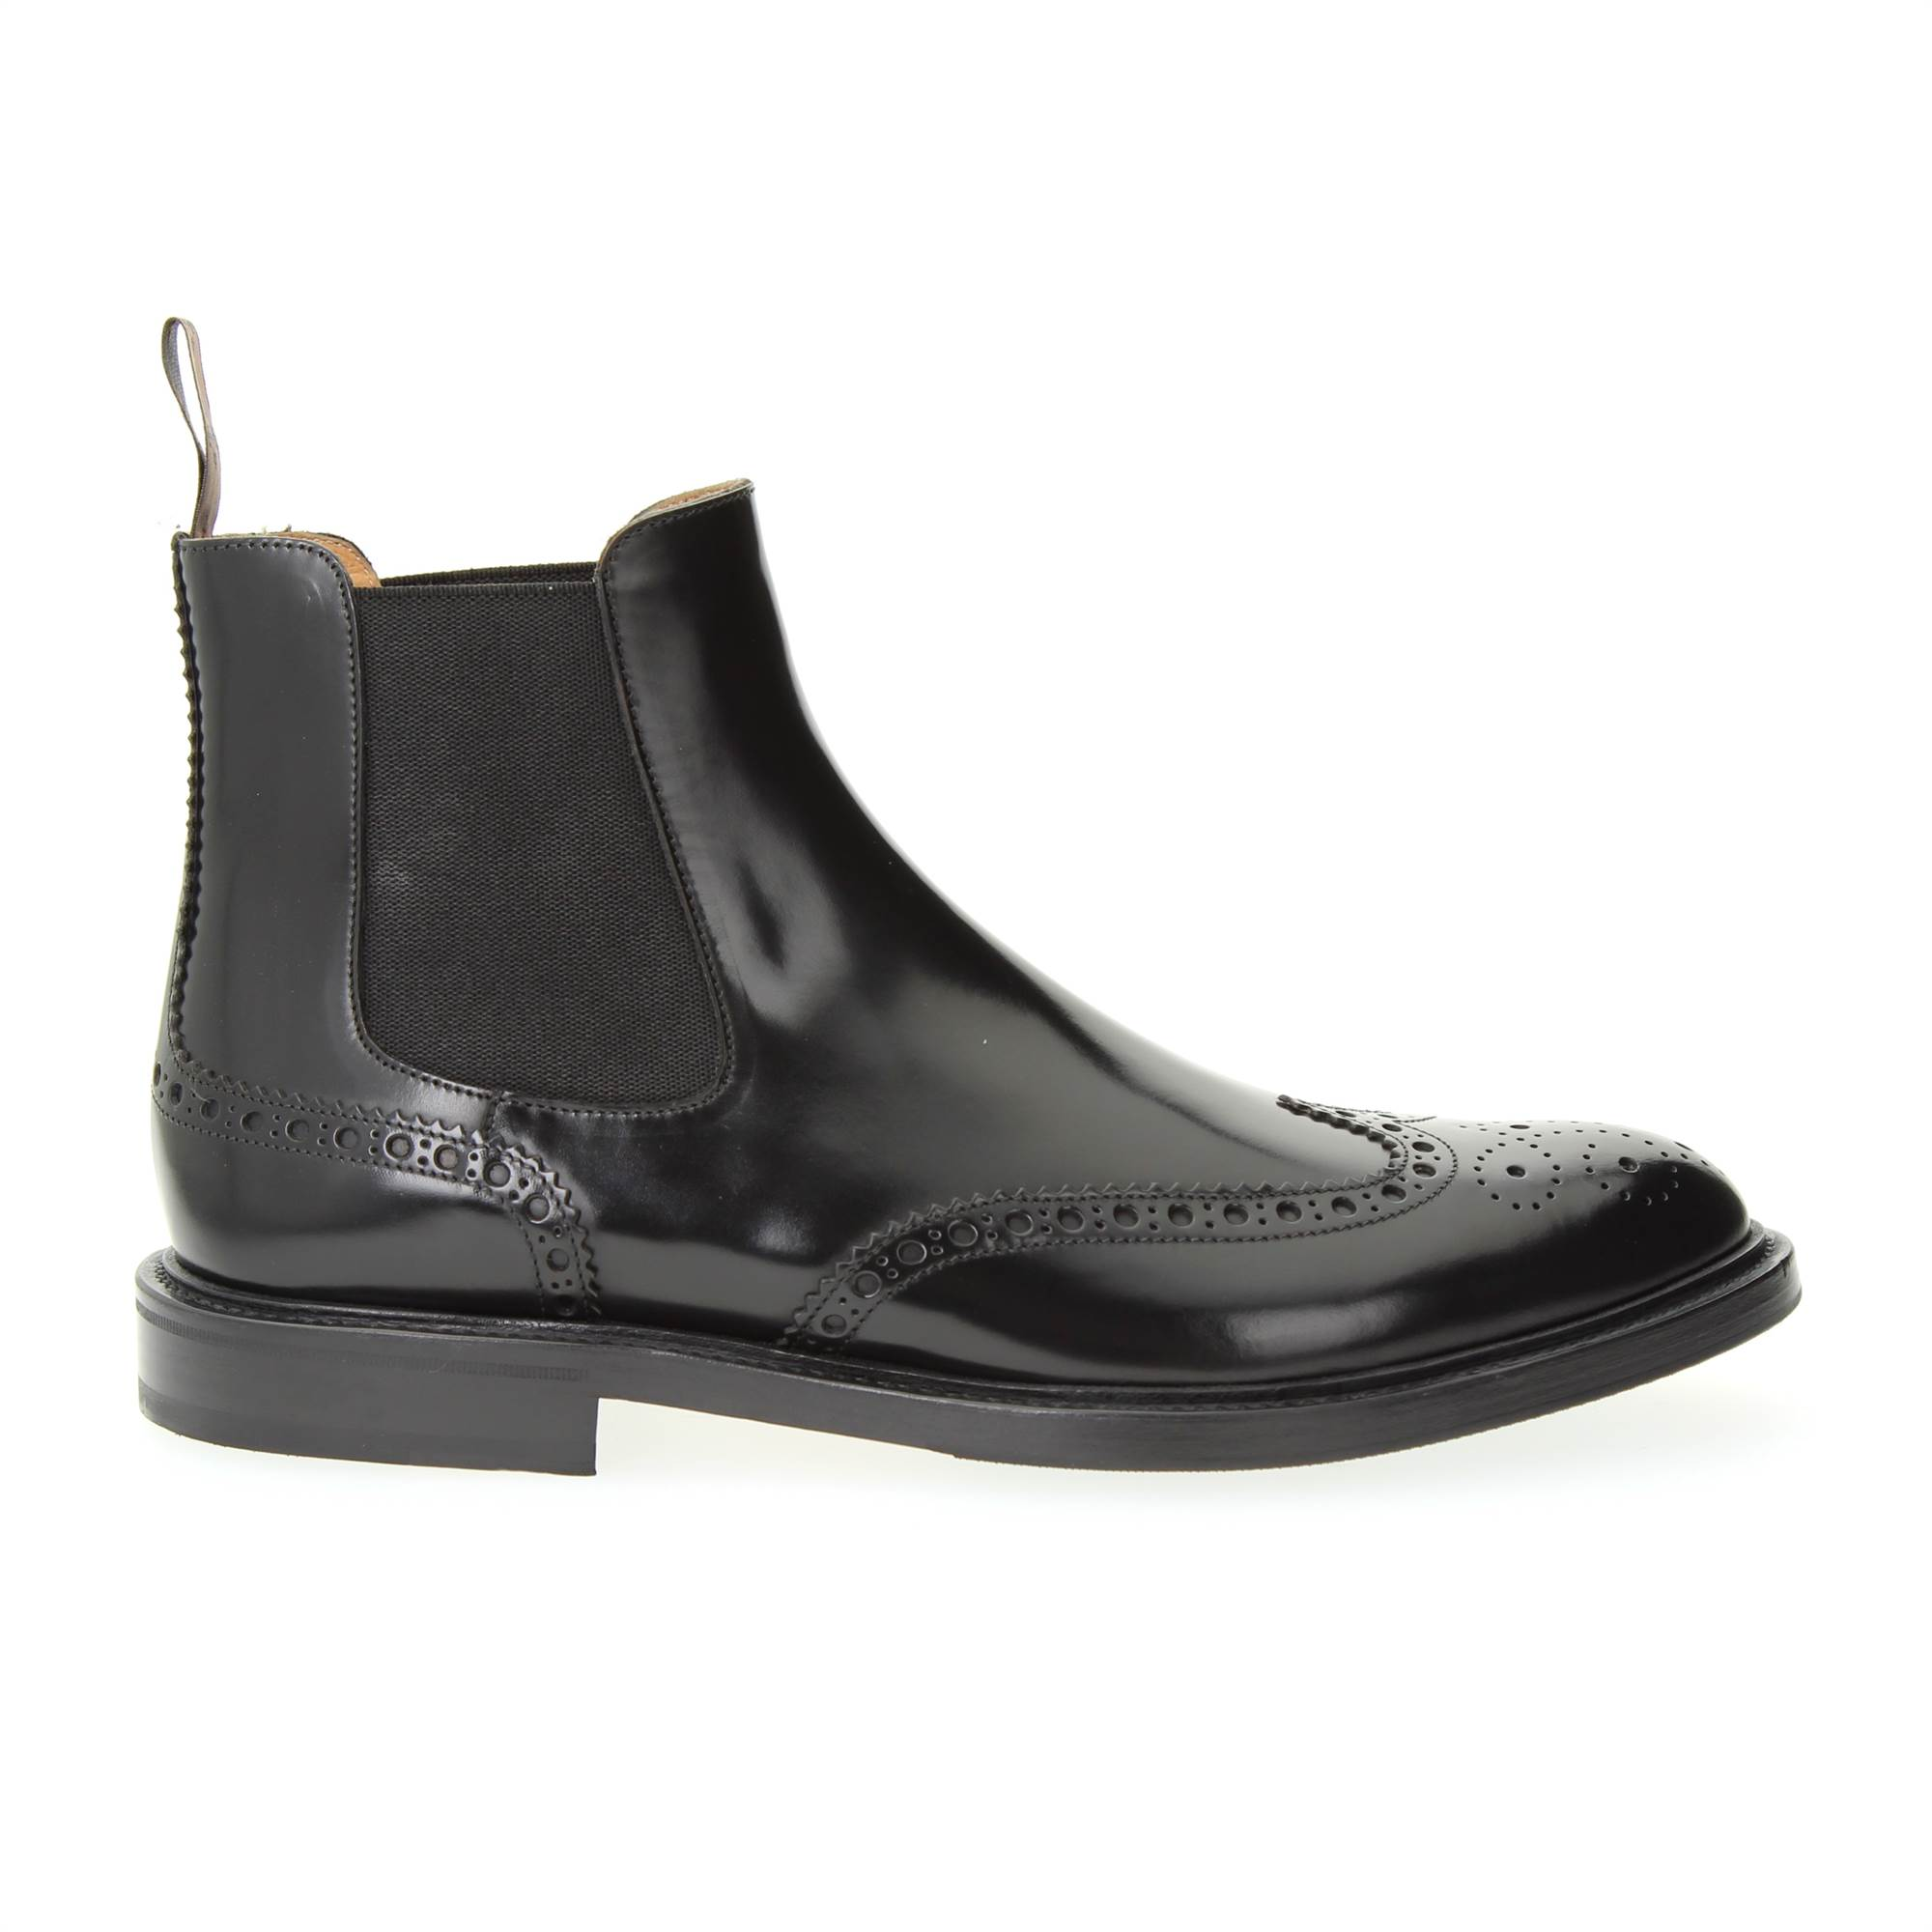 LANCIOTTI DE VERZI 254P3 NERO Shoes Man beatles